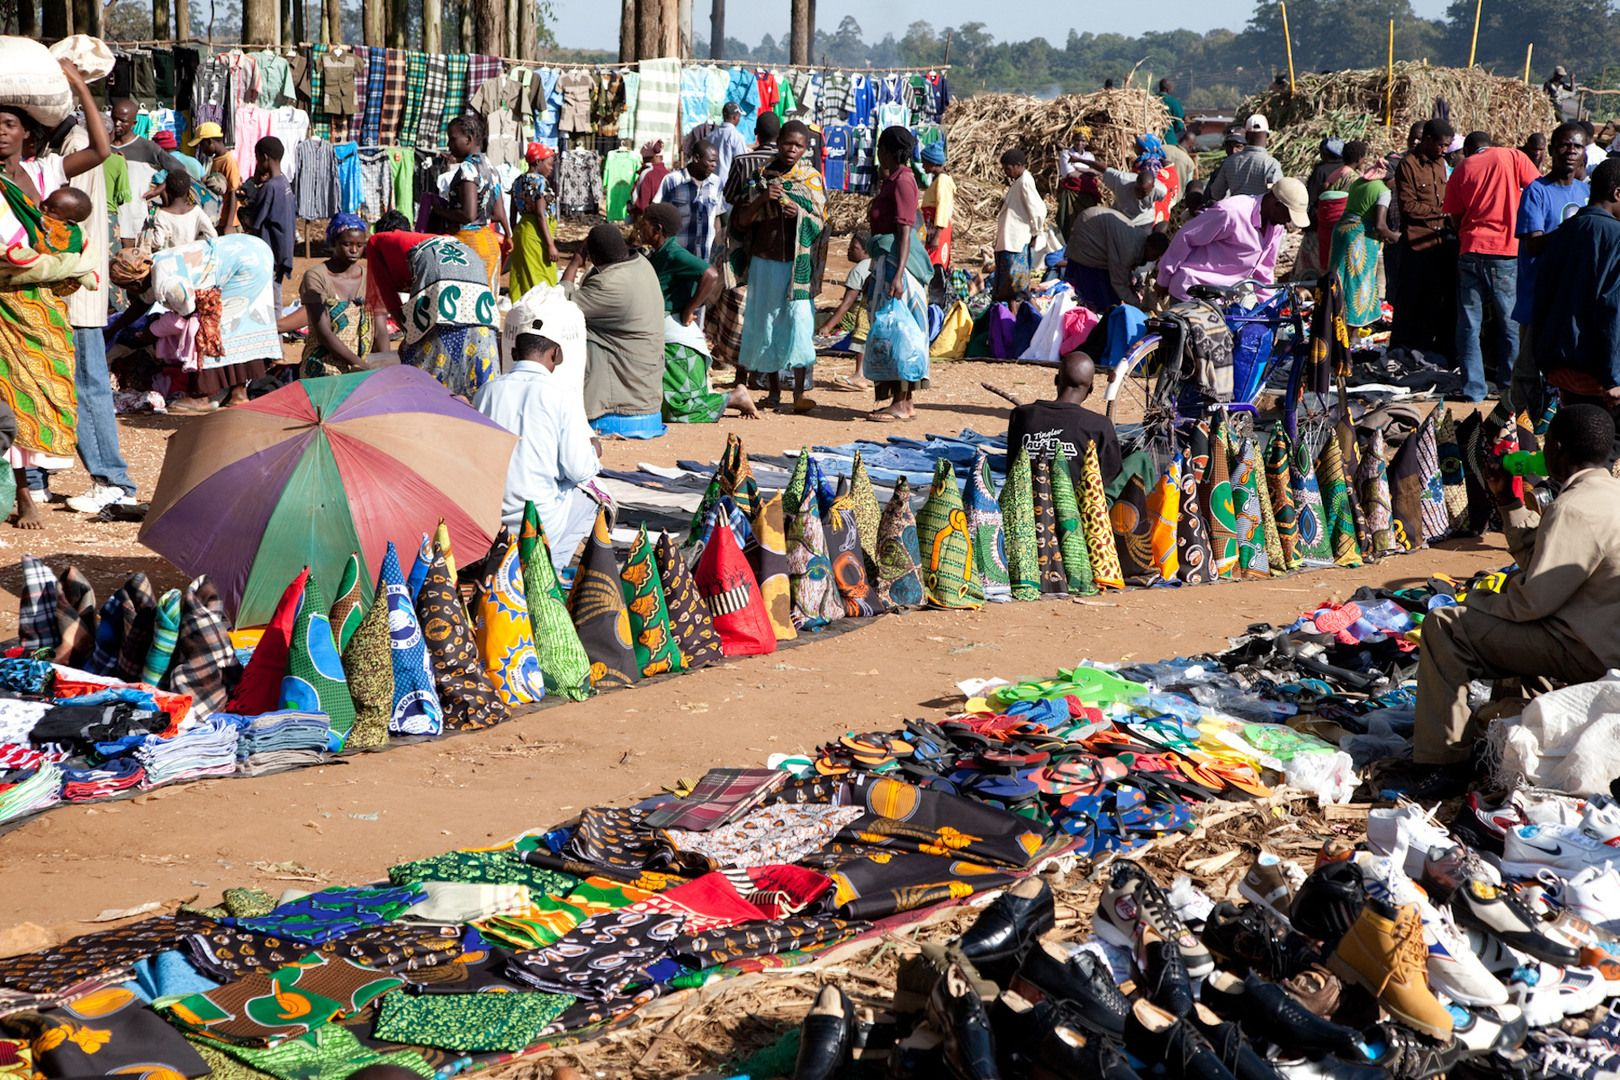 MALAWI: Colorful and ornate fabric for sale at the Malawi ...